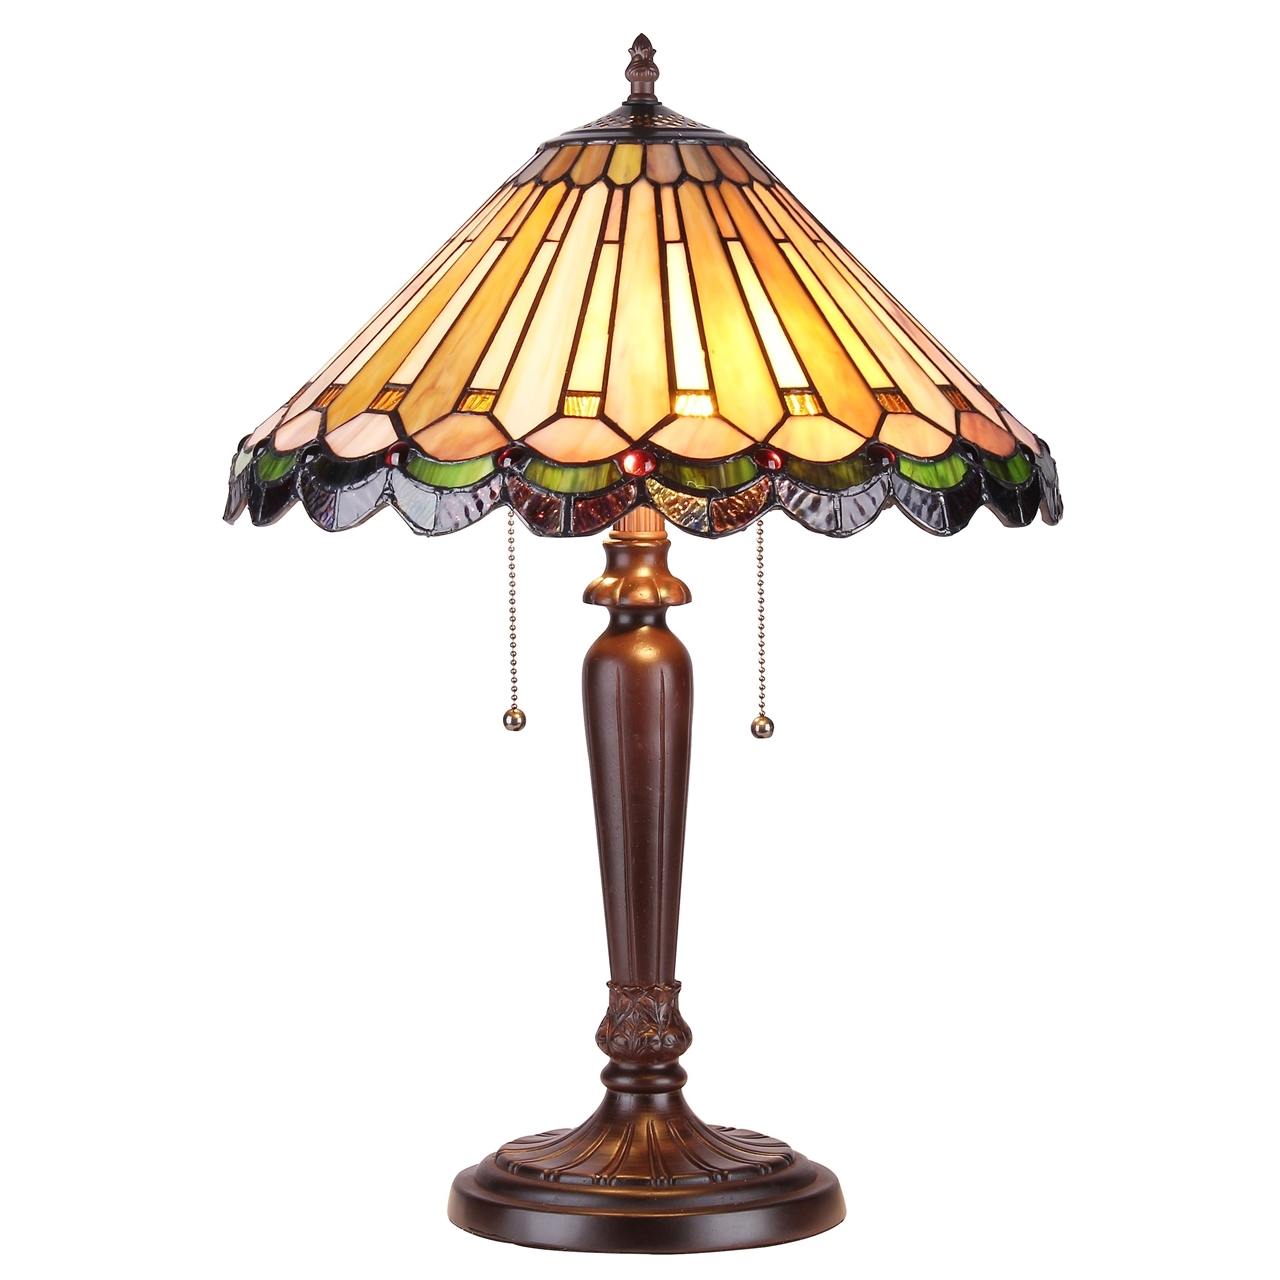 CHLOE Lighting Inc Tiffany Lamp Tiffany Lamps Tiffany